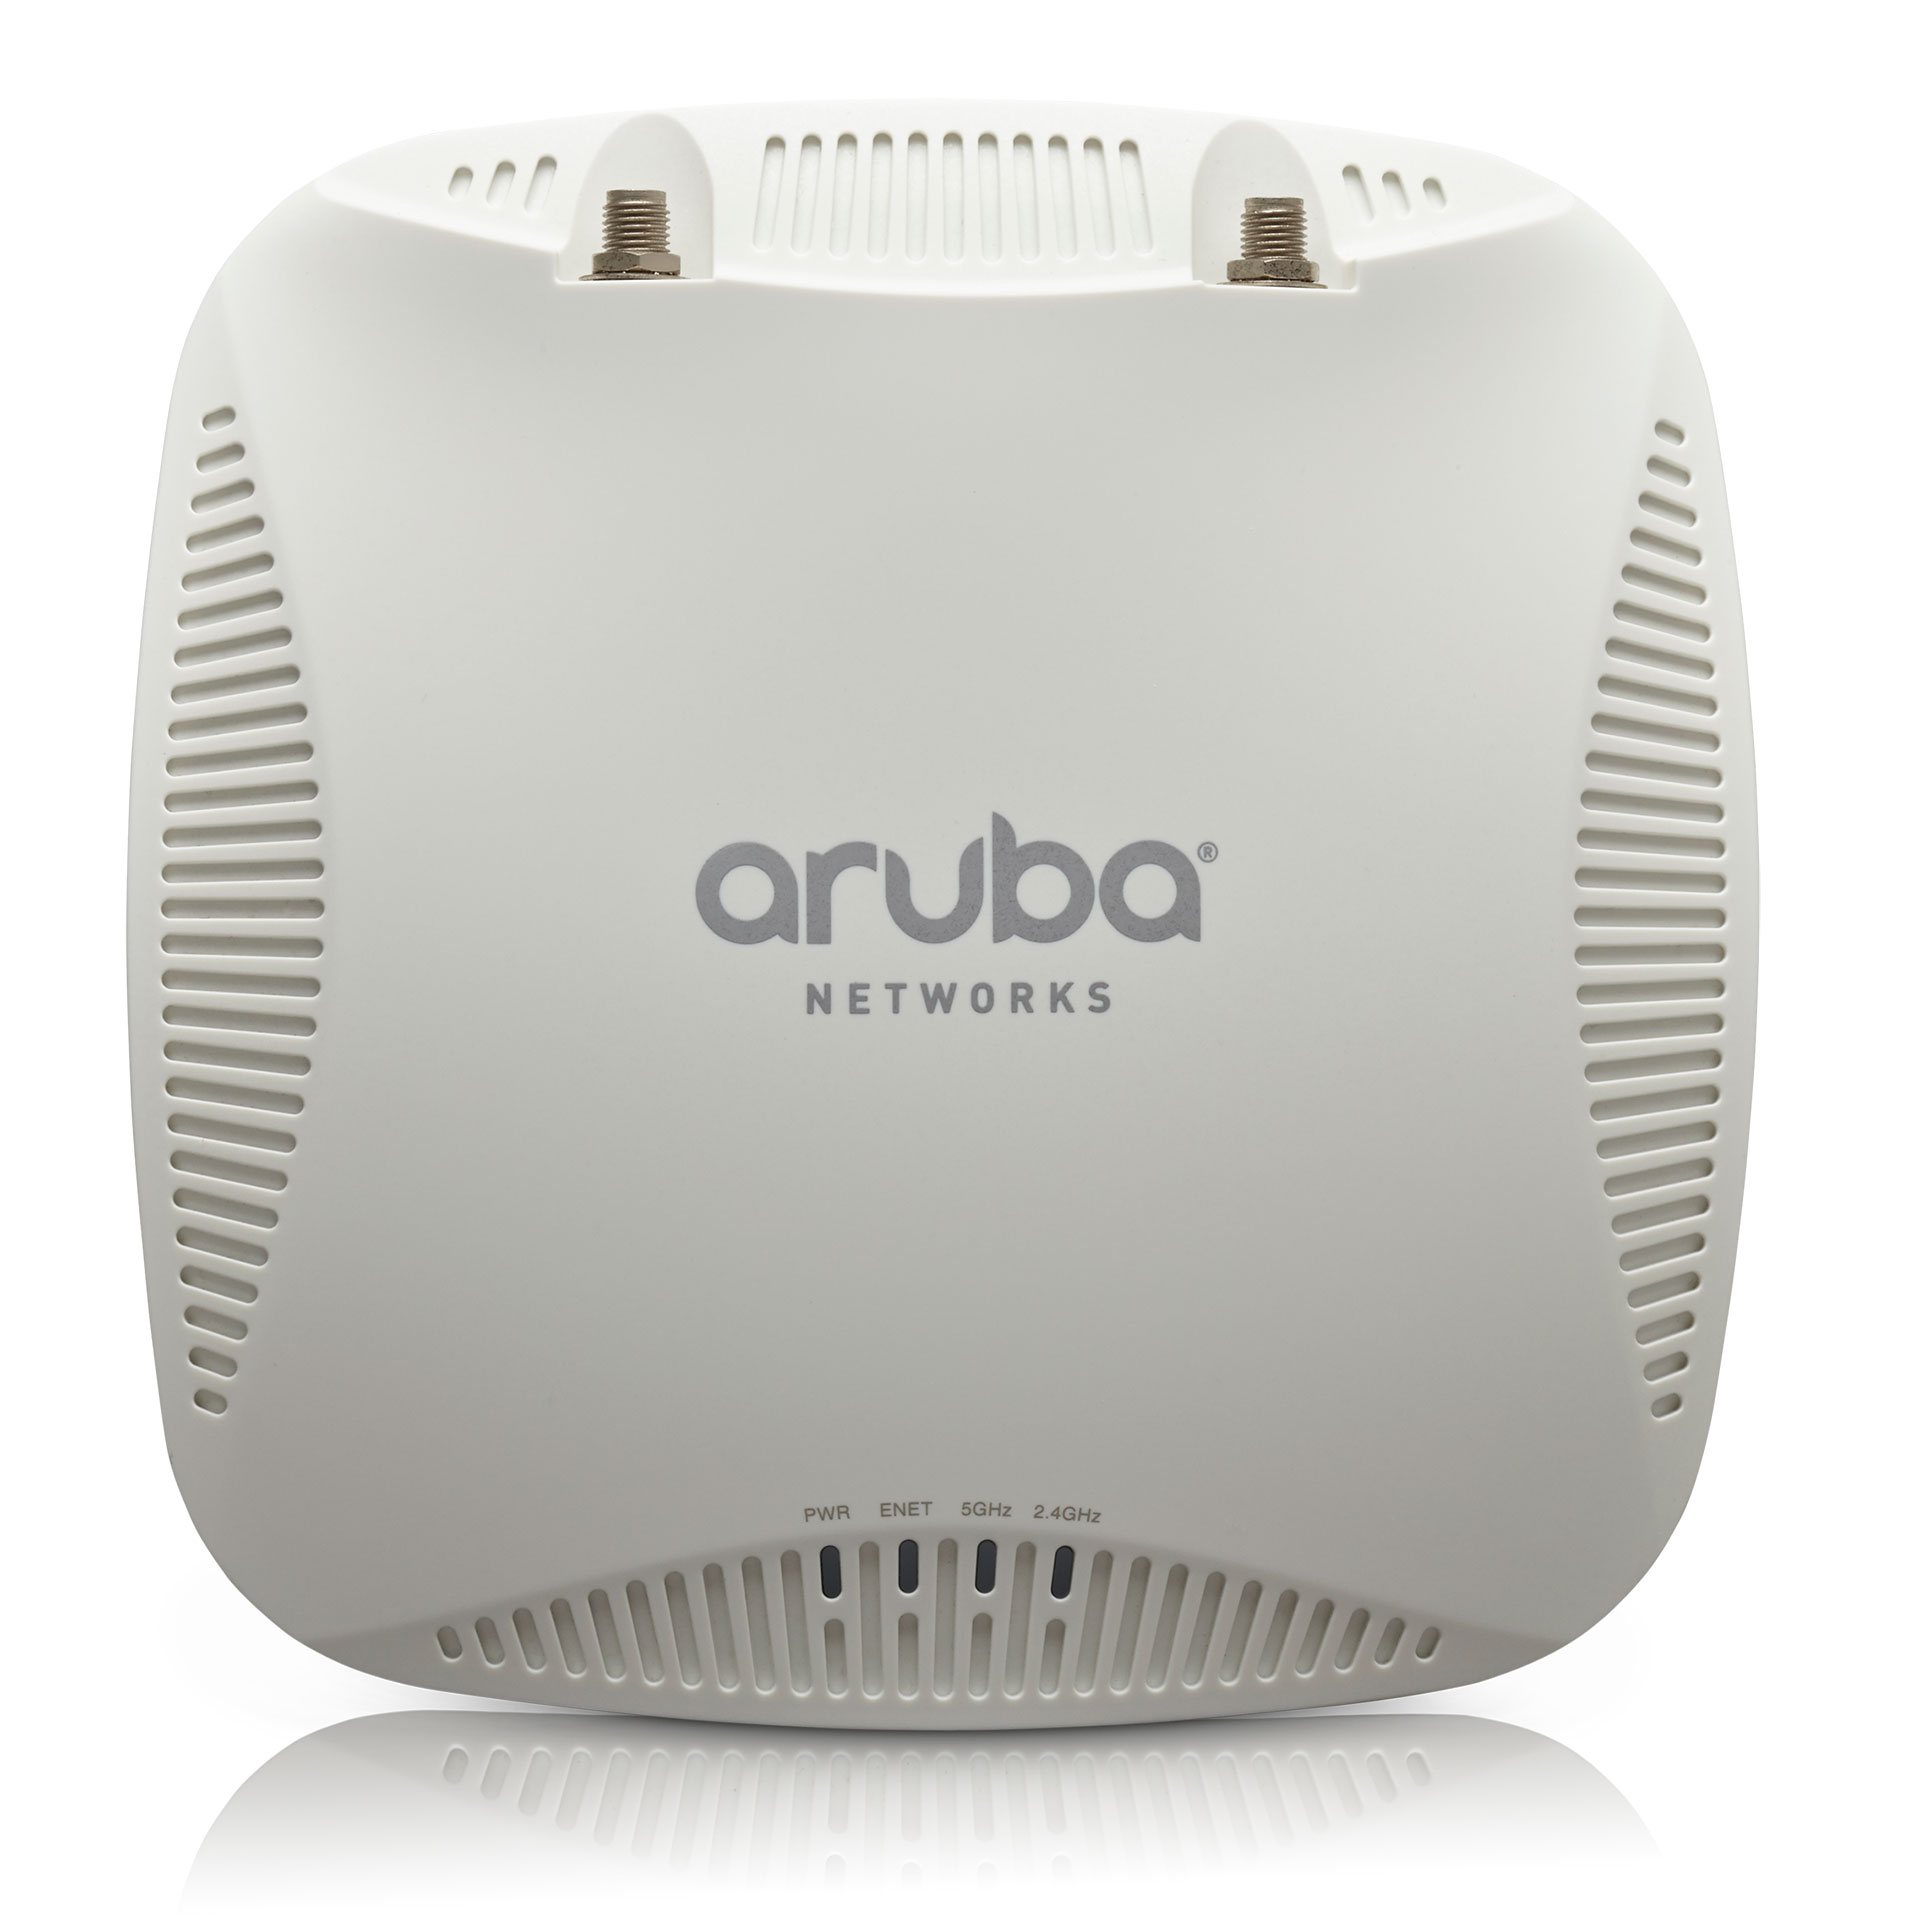 Aruba Networks Wireless AP-103 In-ceiling PoE Access Point JW156